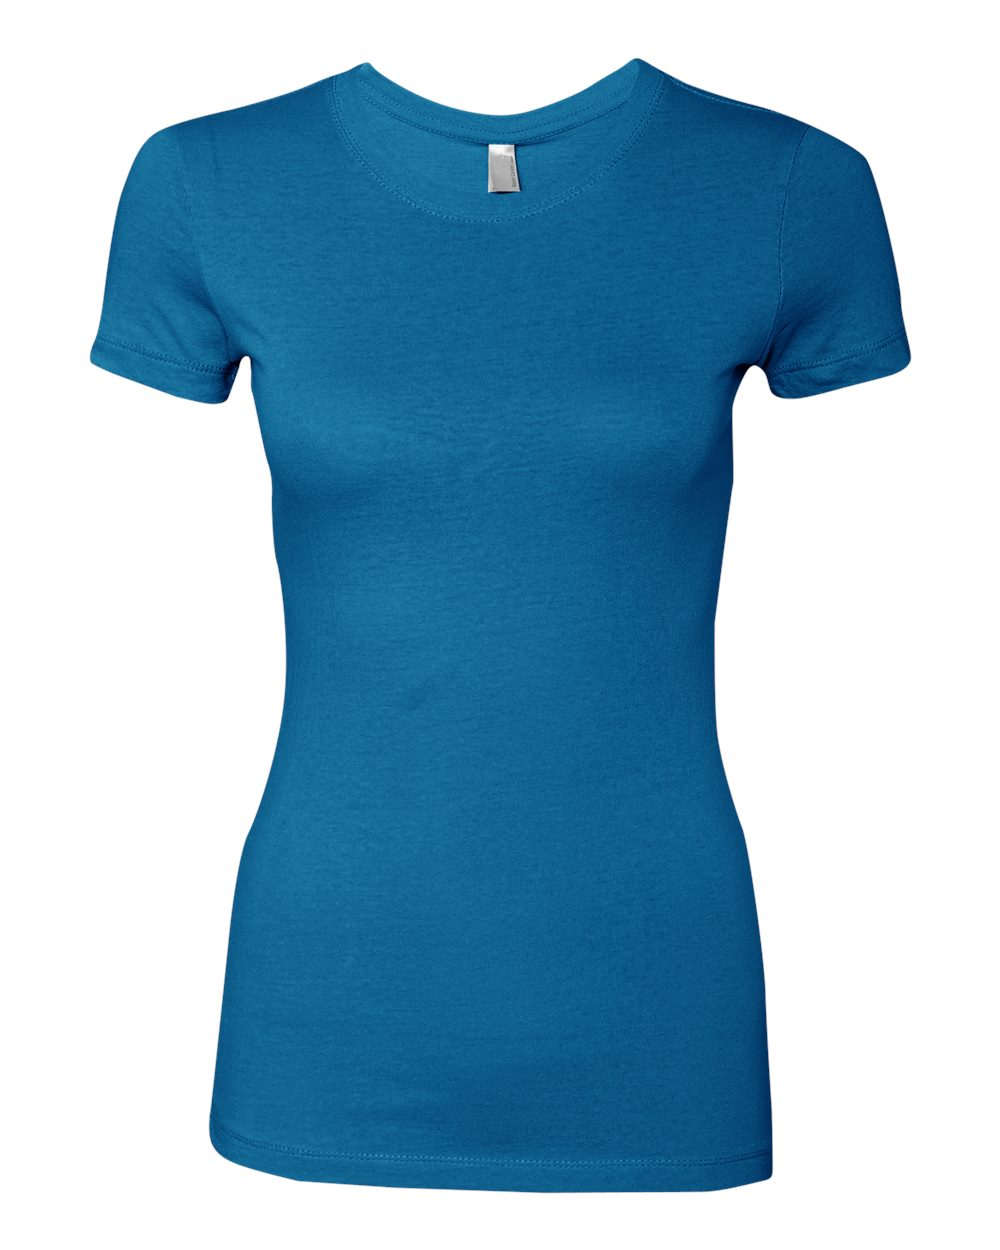 Next_Level_3300L_Turquoise_Front_High.jpg